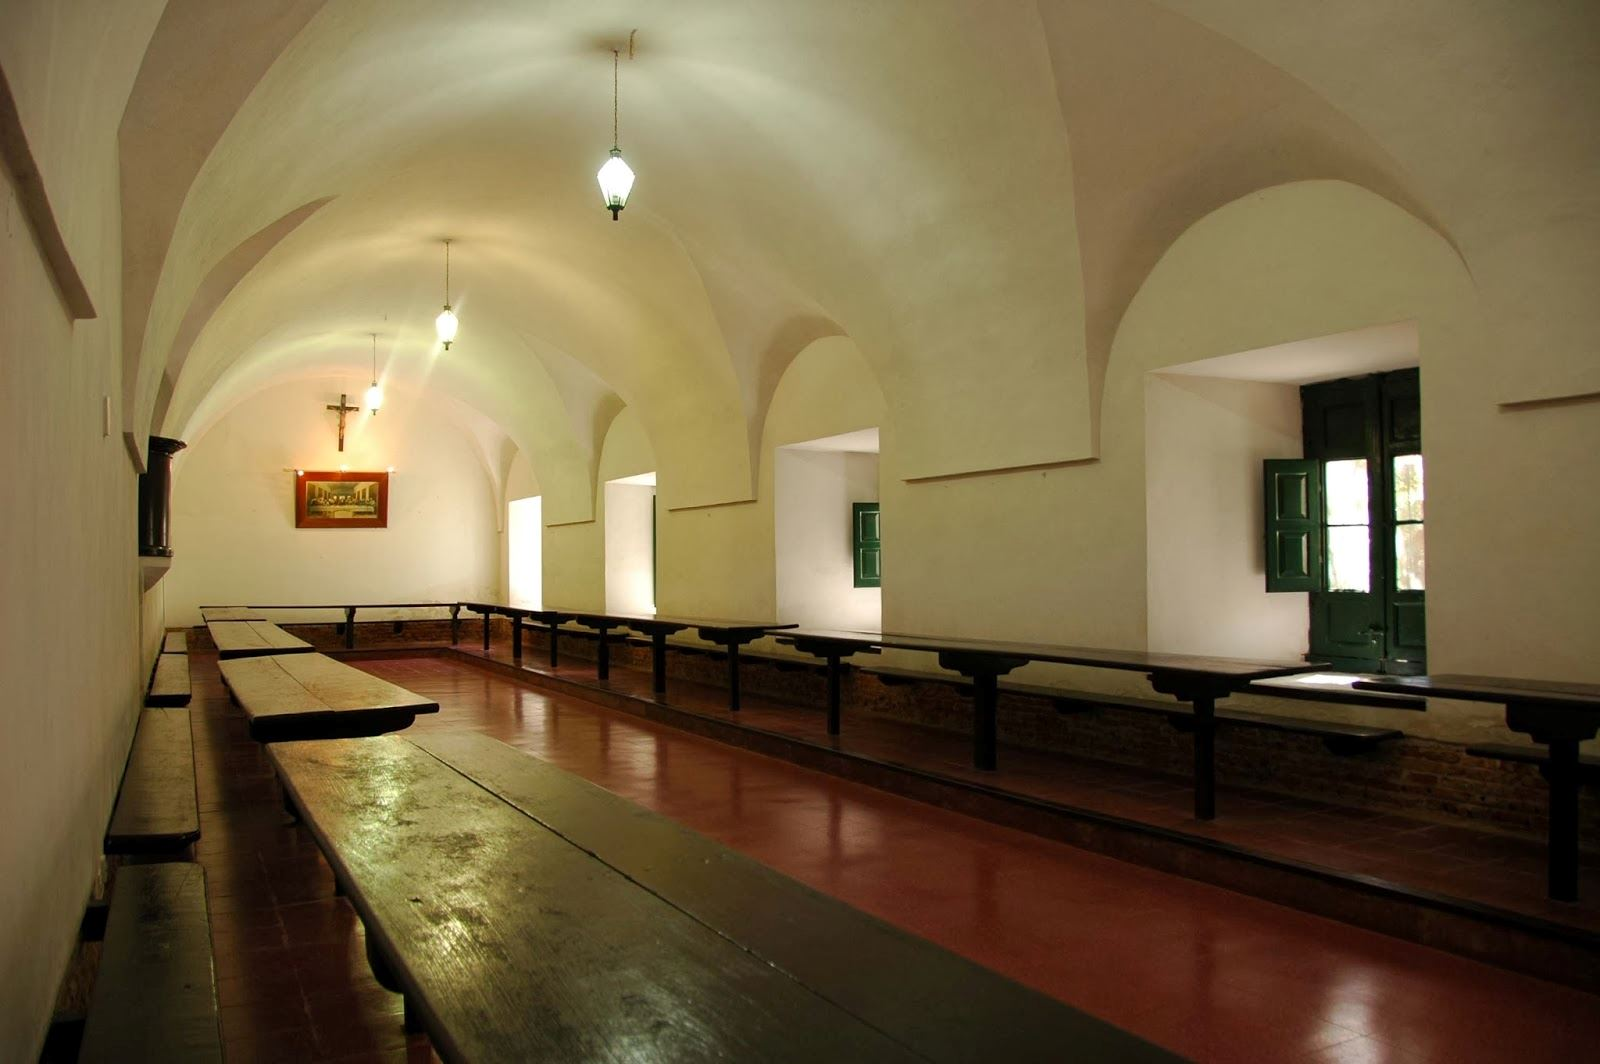 Private Tour To The San Lorenzo Convent